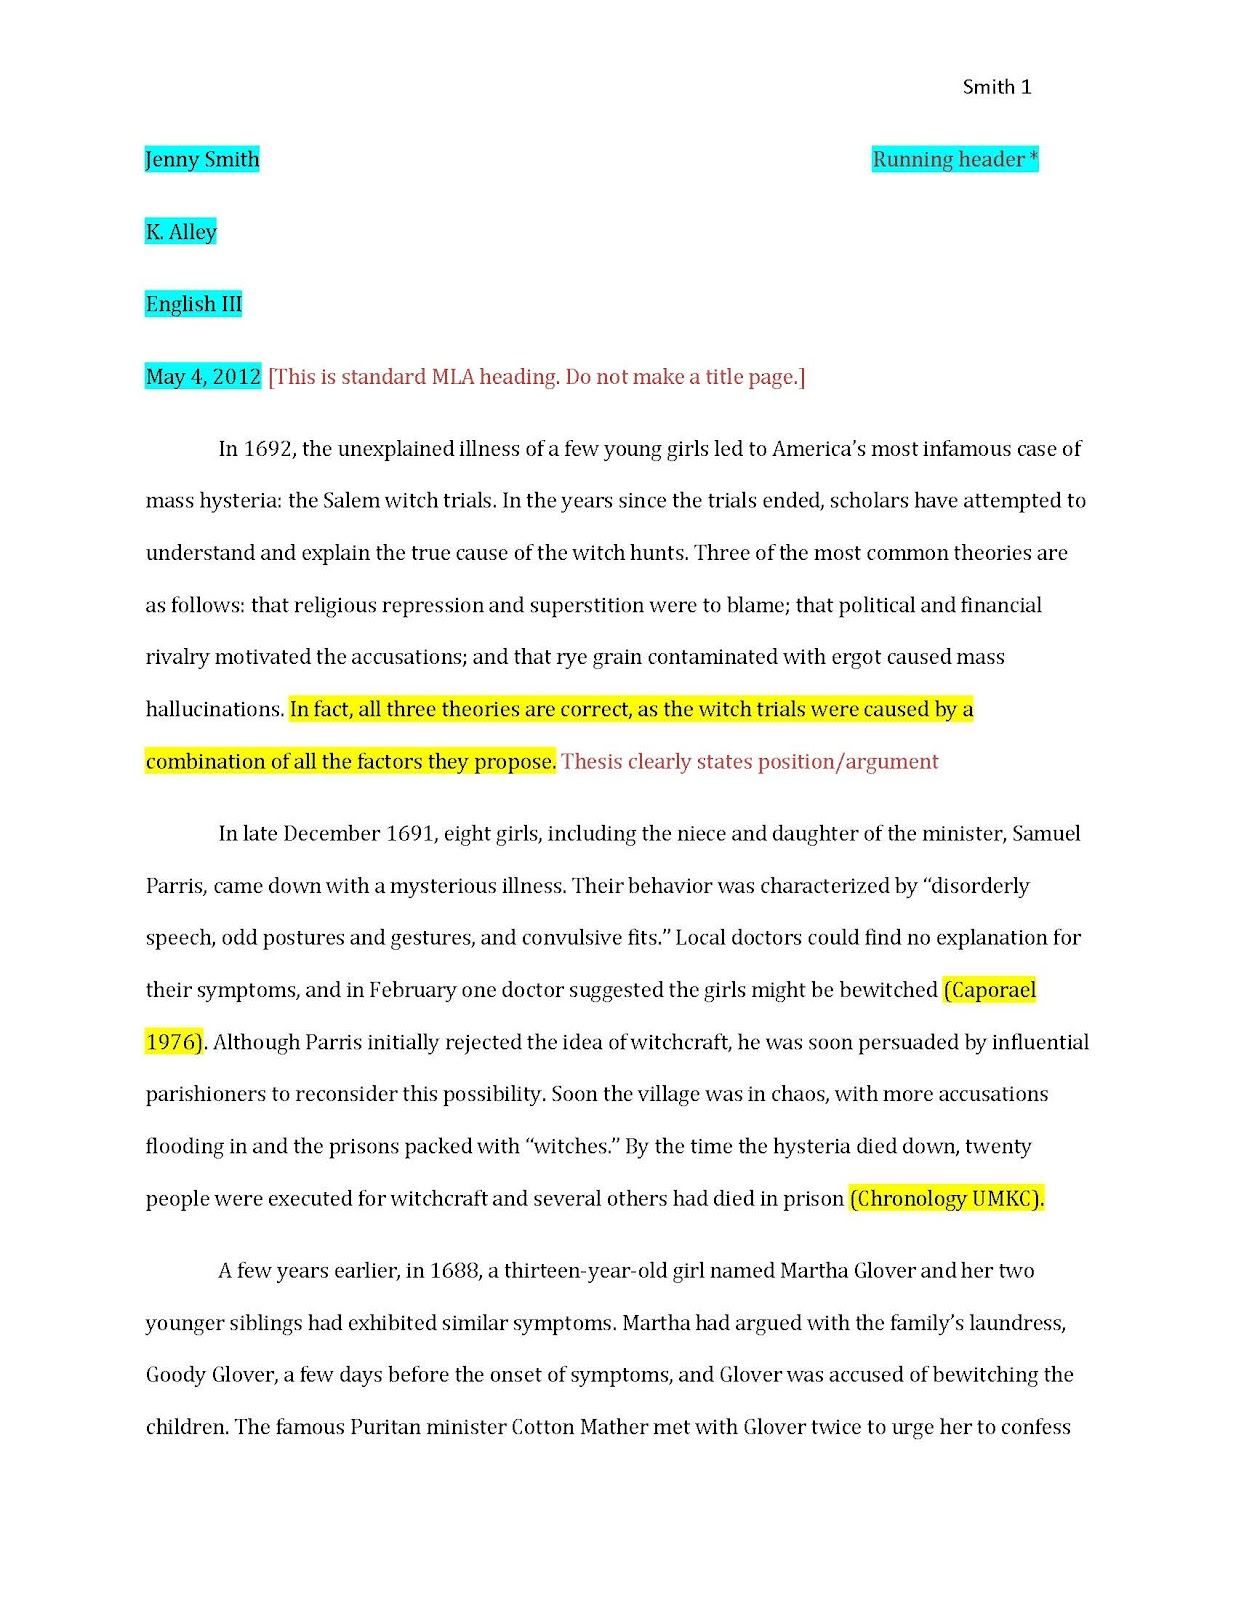 005 Examplepaper Page 1 Research Paper Stunning Citing Apa Chicago Style Websites In Mla Full